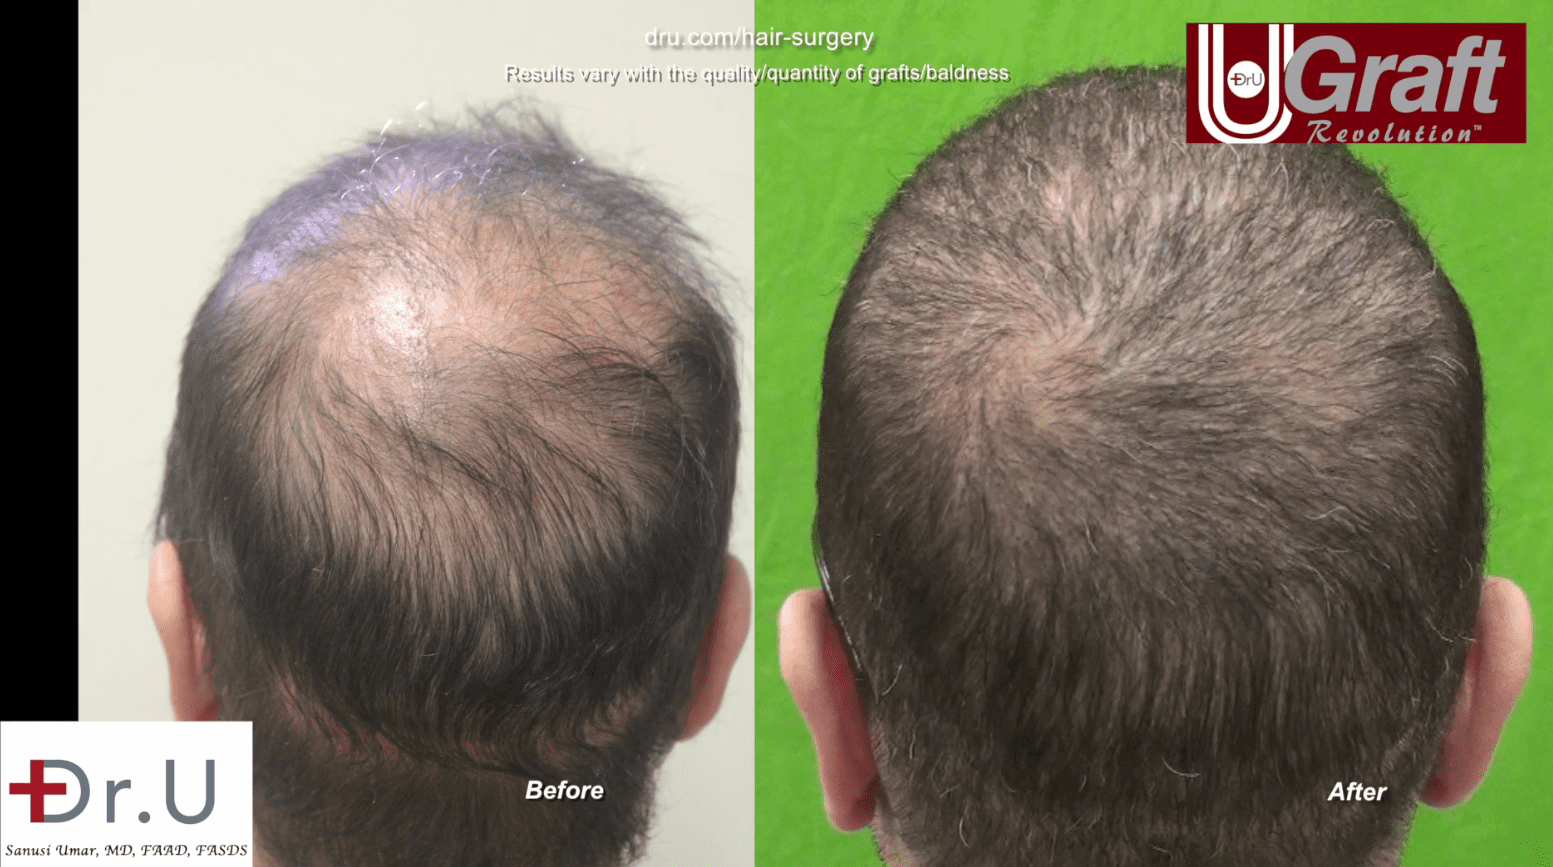 This patient no longer needs to worry about strategically brushing his hair in an attempt to cover his balding.